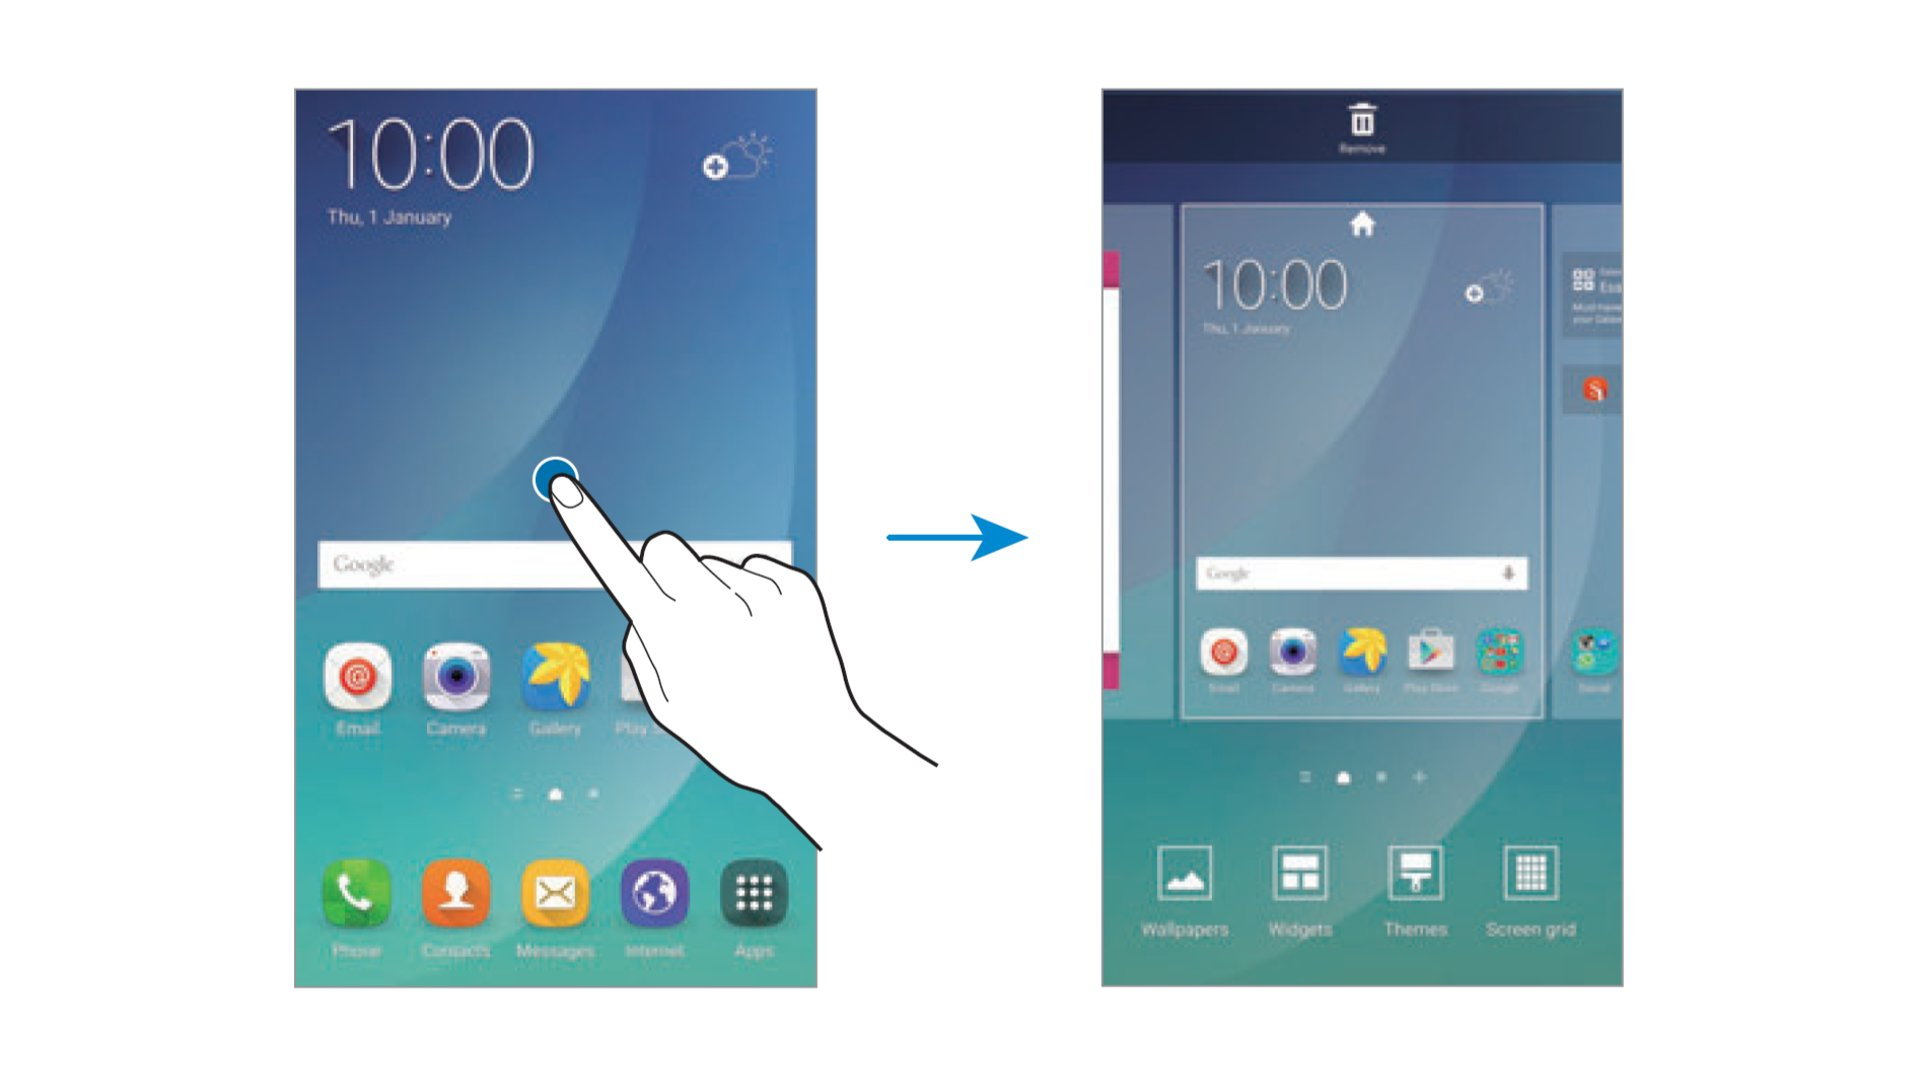 Samsung Galaxy Note 5 - Home Screen Options